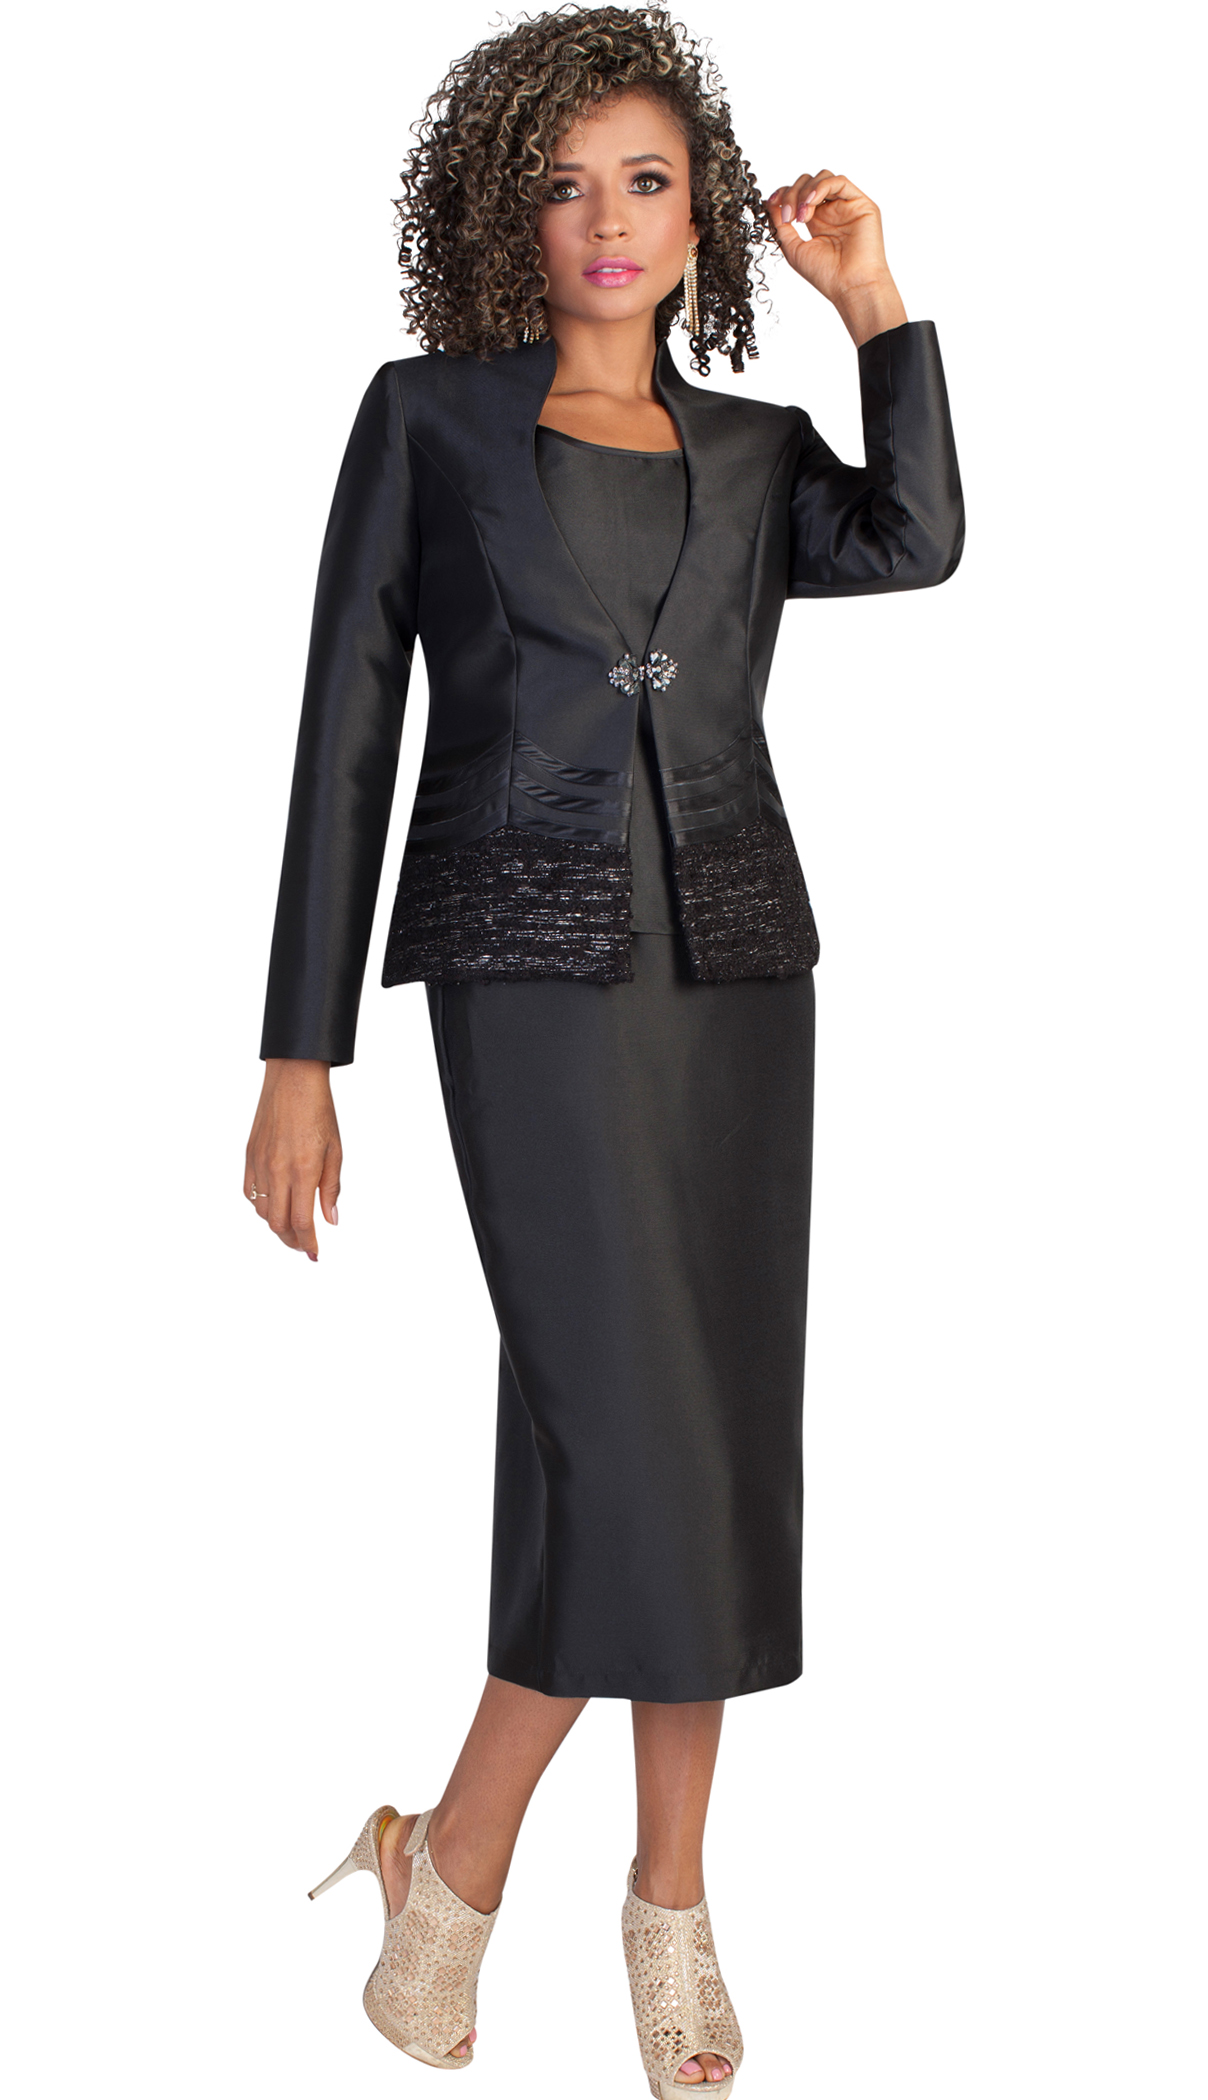 Tally Taylor Suit 4643